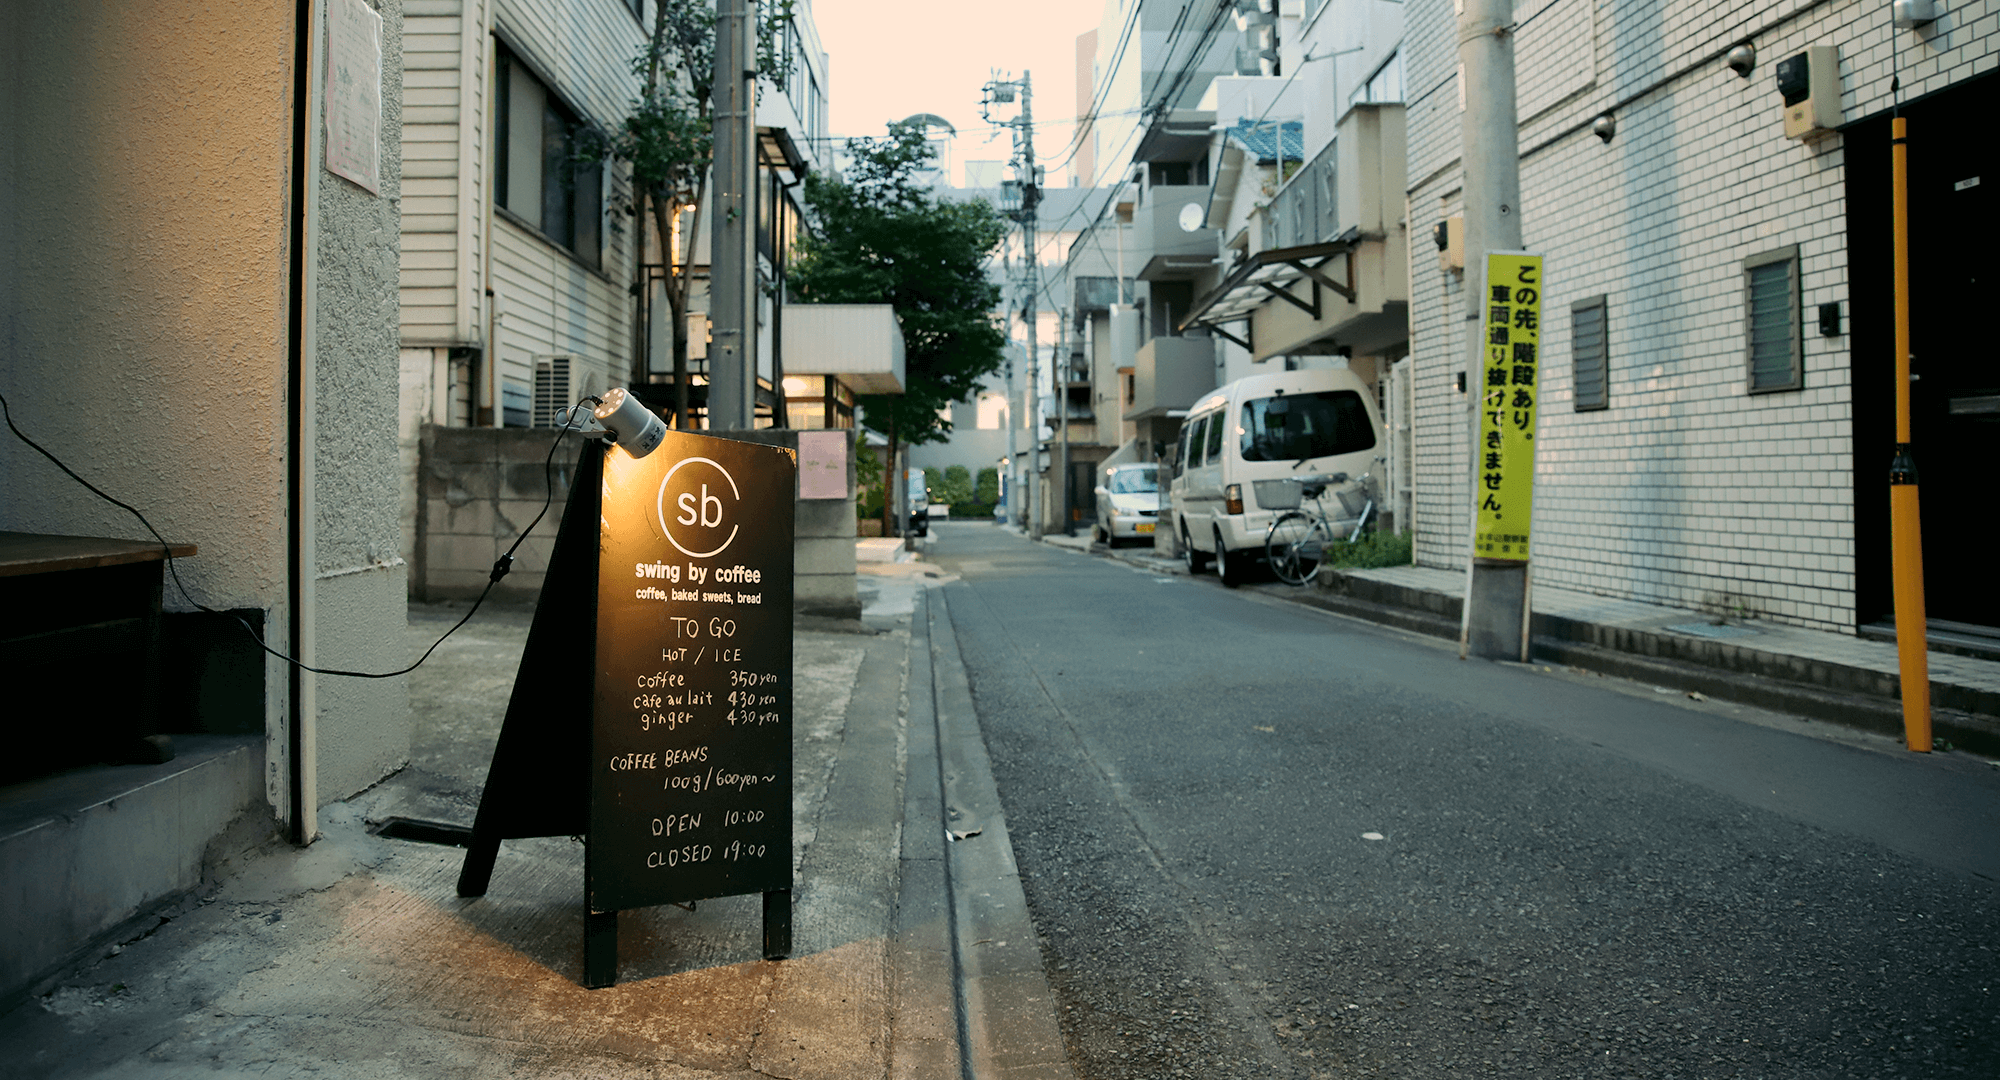 Swing by coffeeの看板